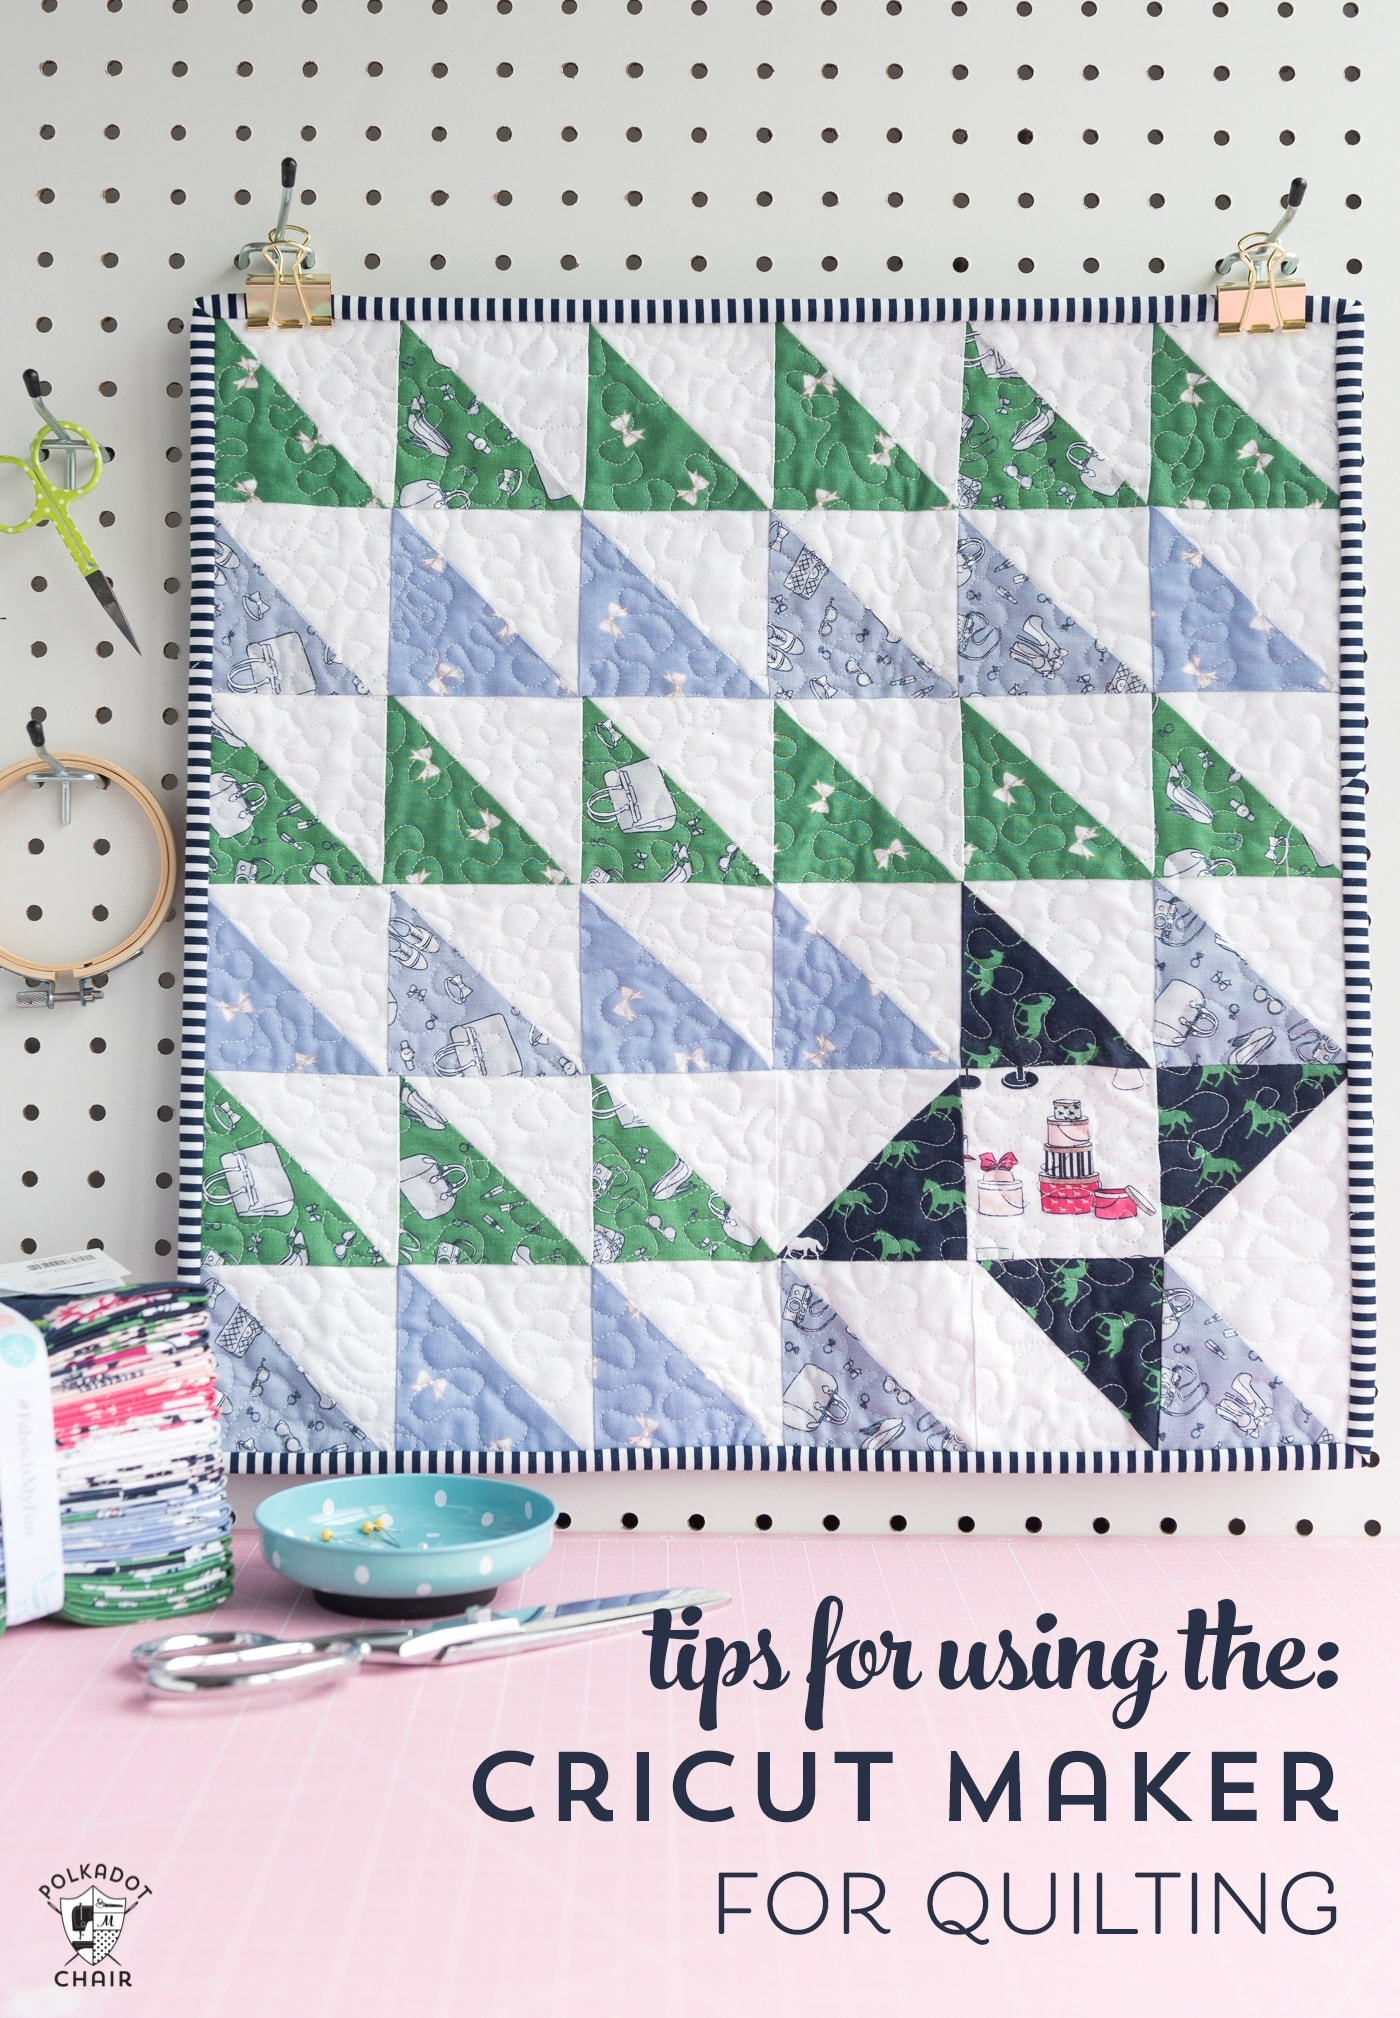 Tips And Tricks For Using The Cricut Maker For Quilting Free Mini